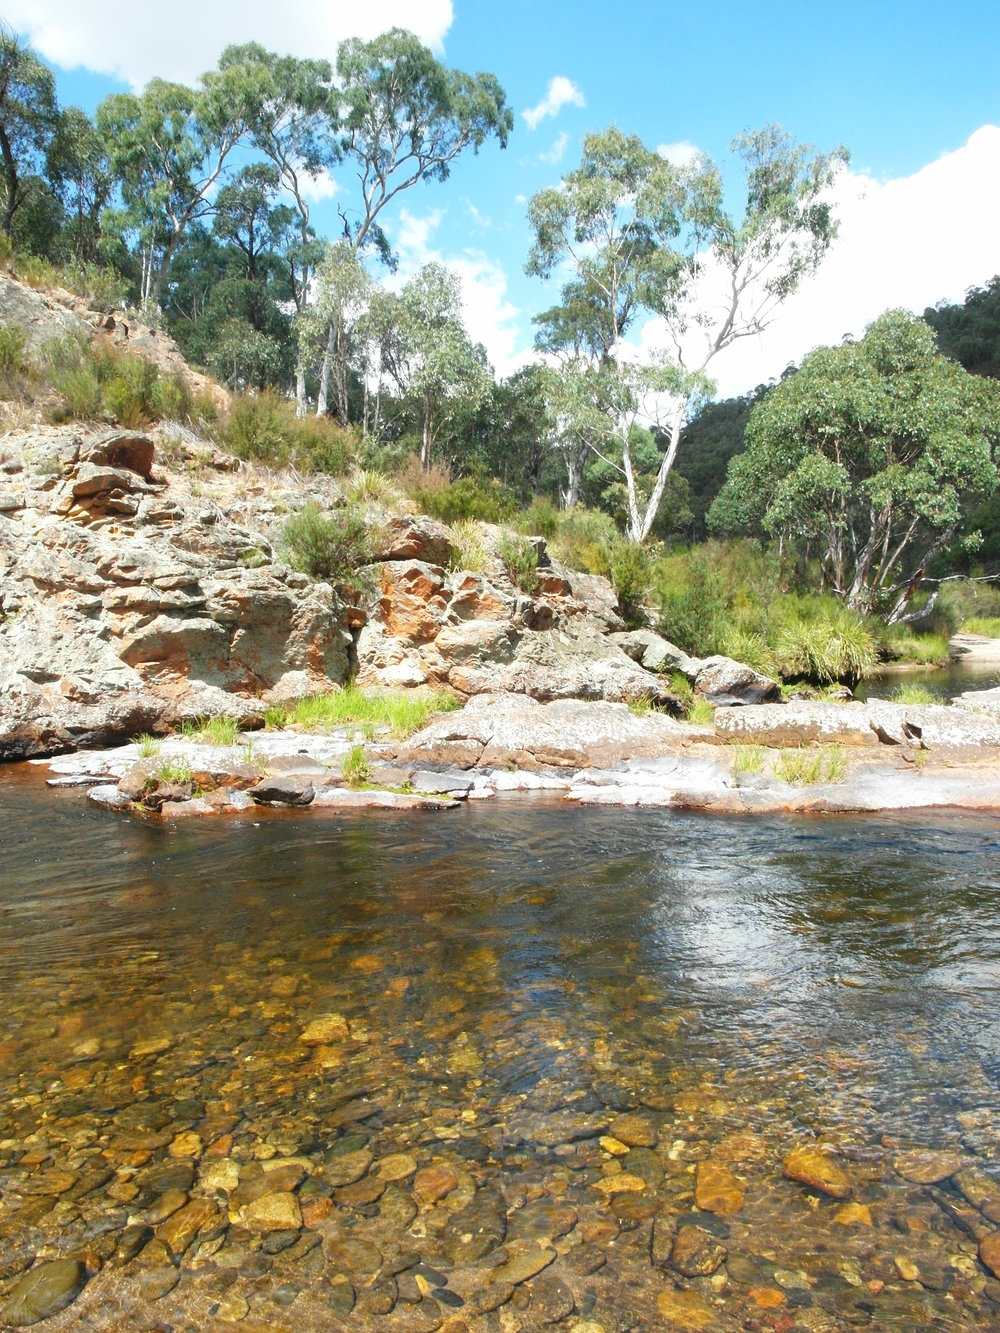 Our favorite swimming spot in the Mitta Mitta river.